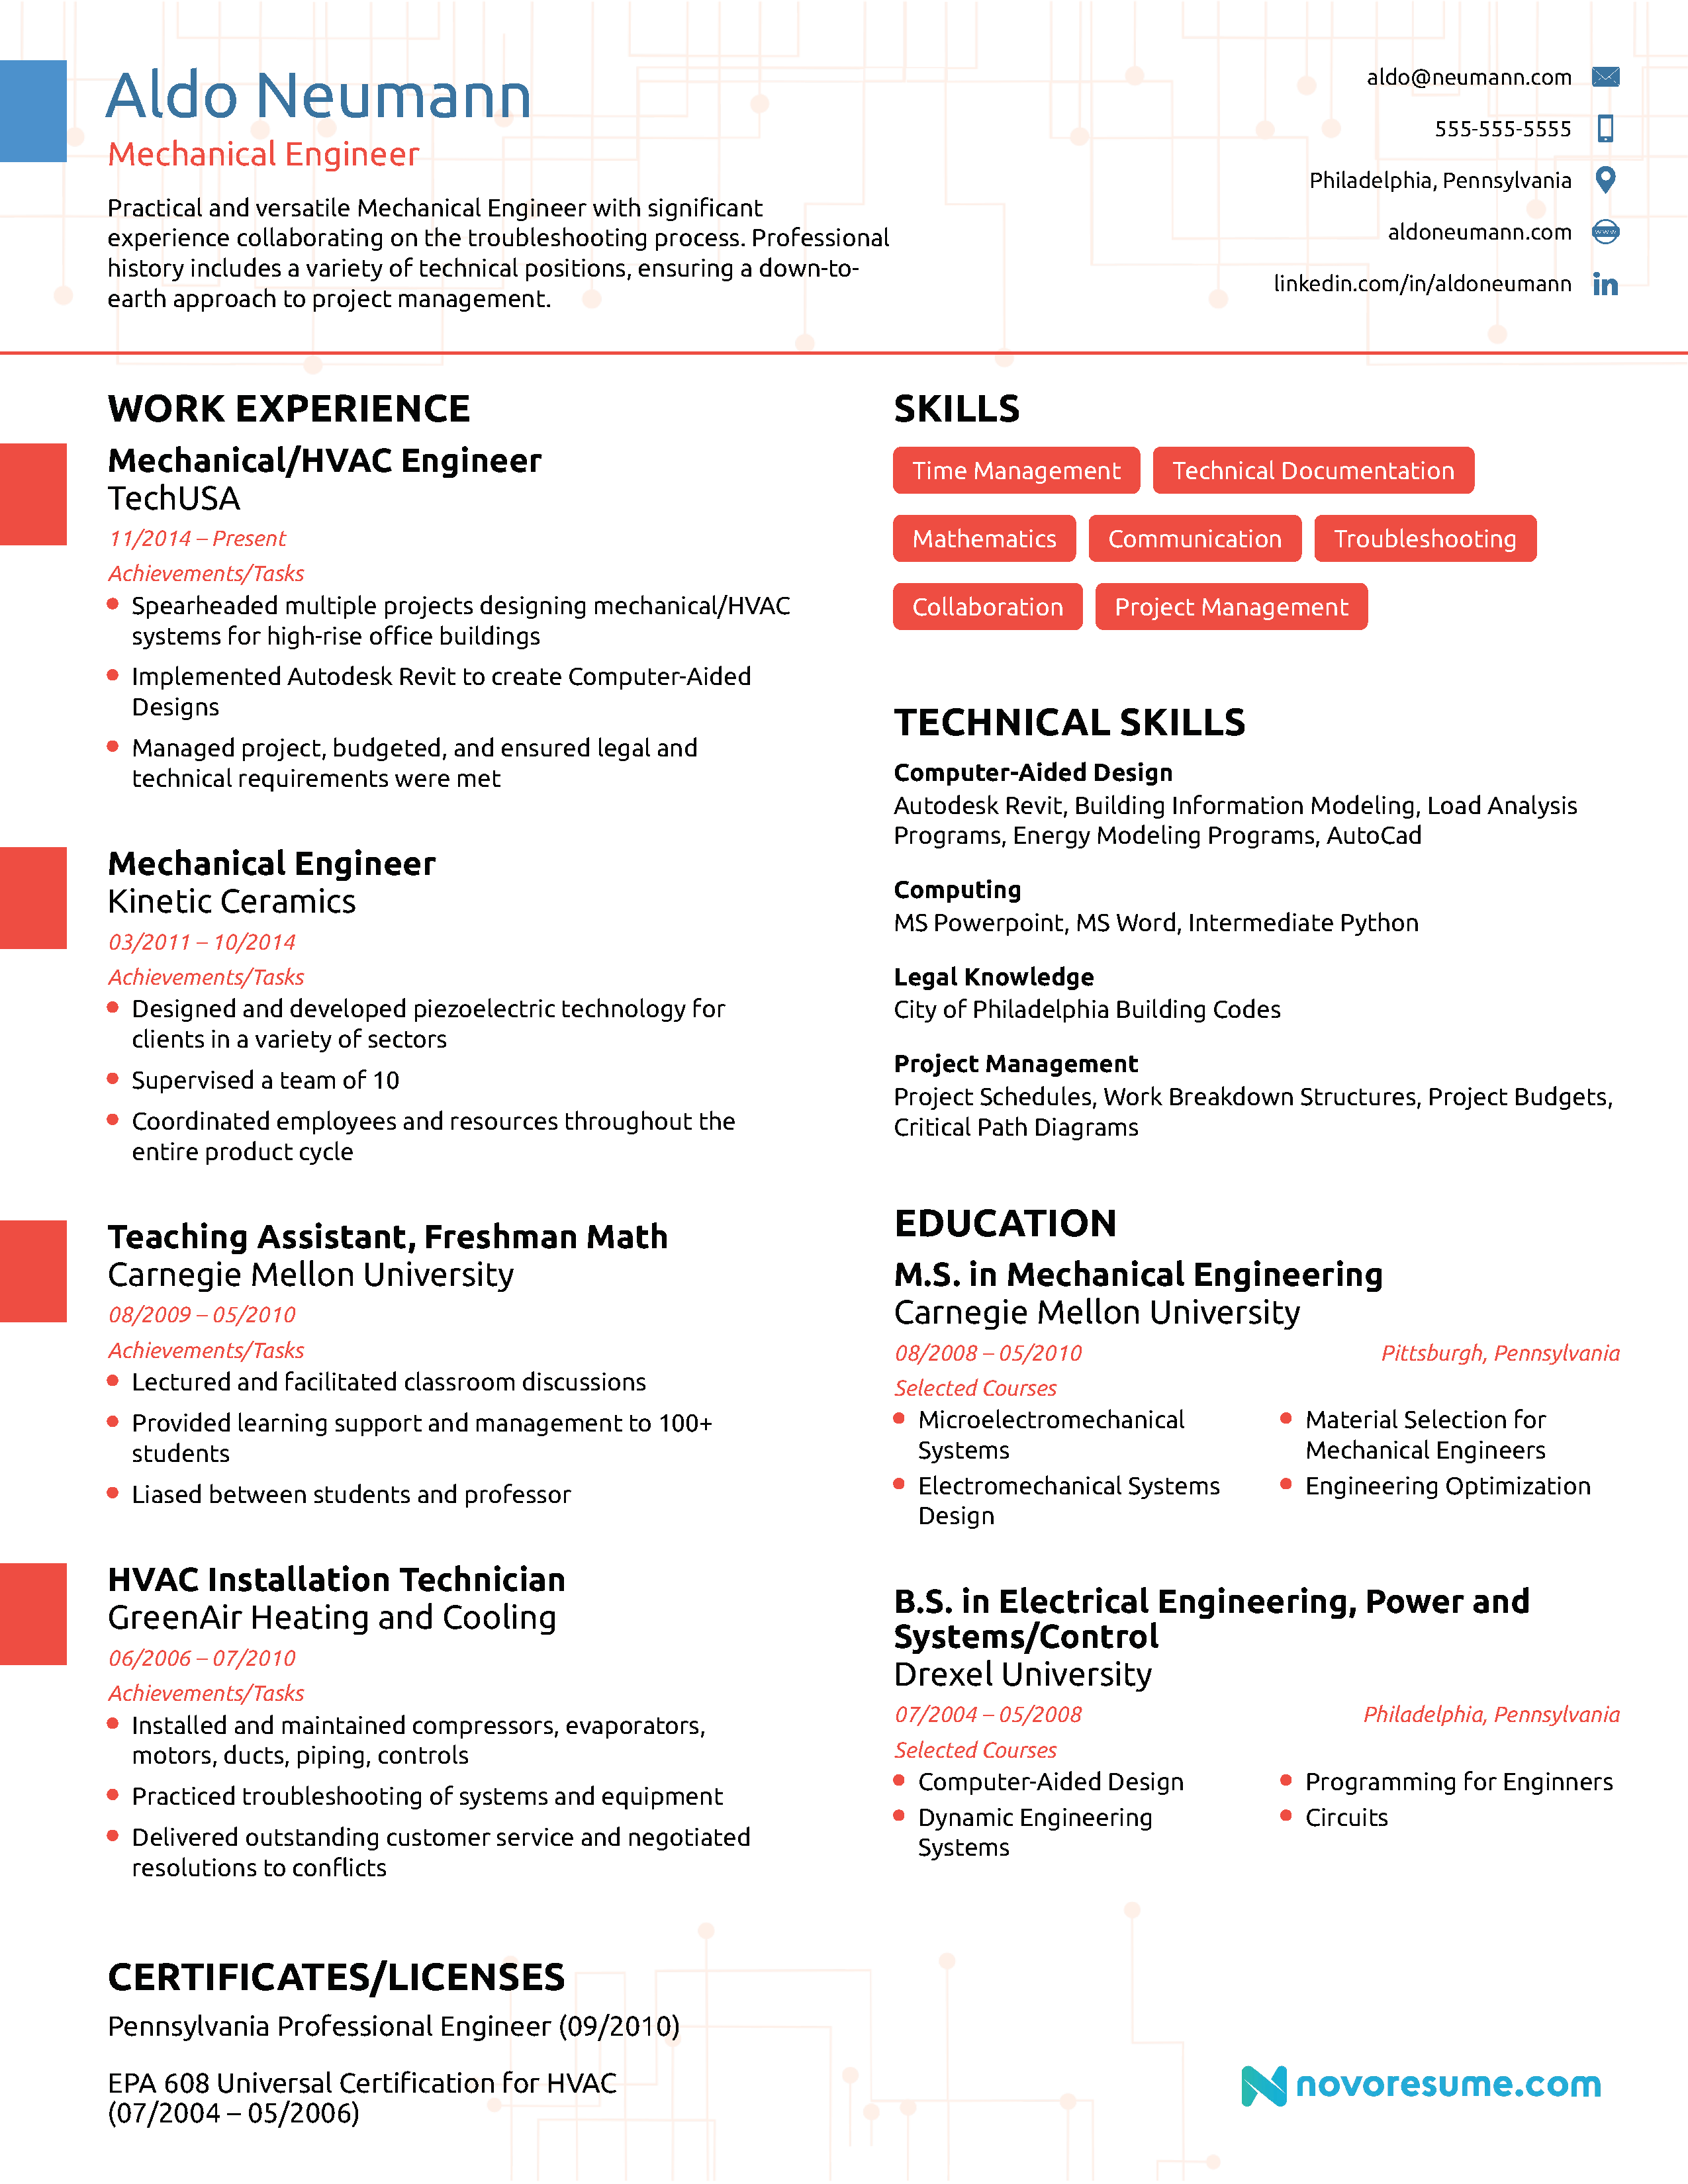 Engineering Resume [2018] - Example & Full Guide